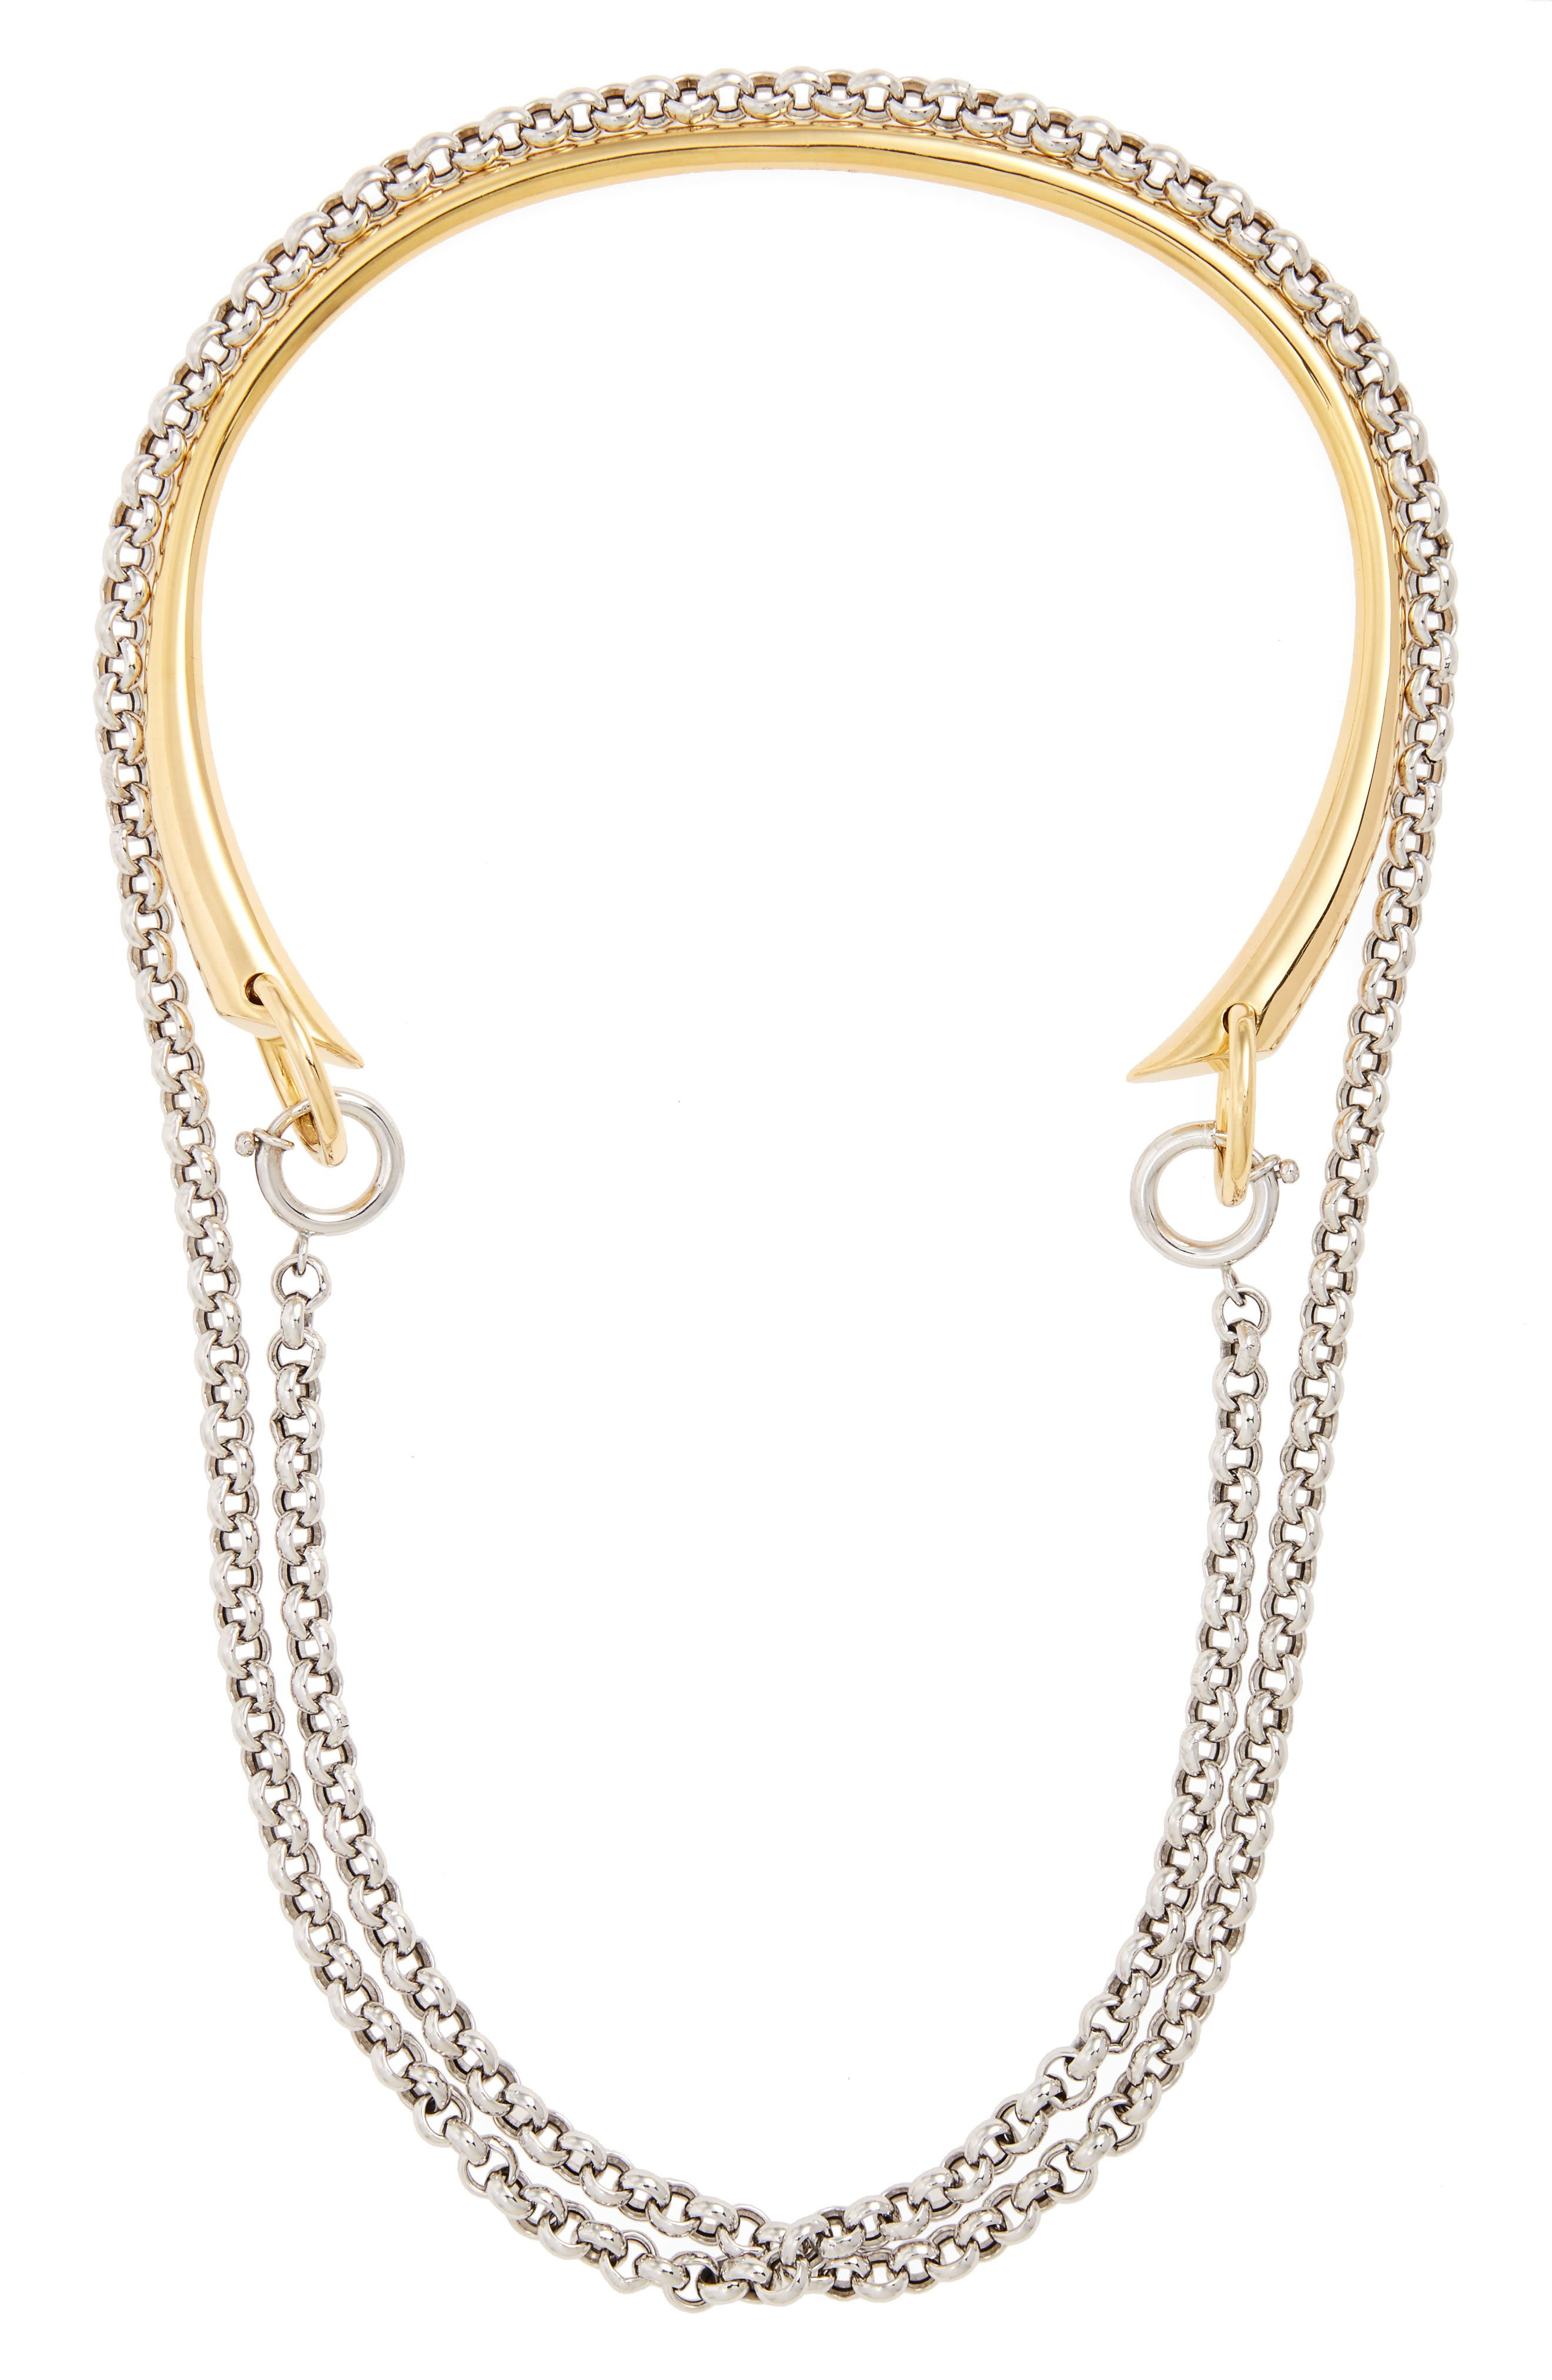 Briska Necklace,                         Main,                         color, SILVER/YELLOW/VERMEIL